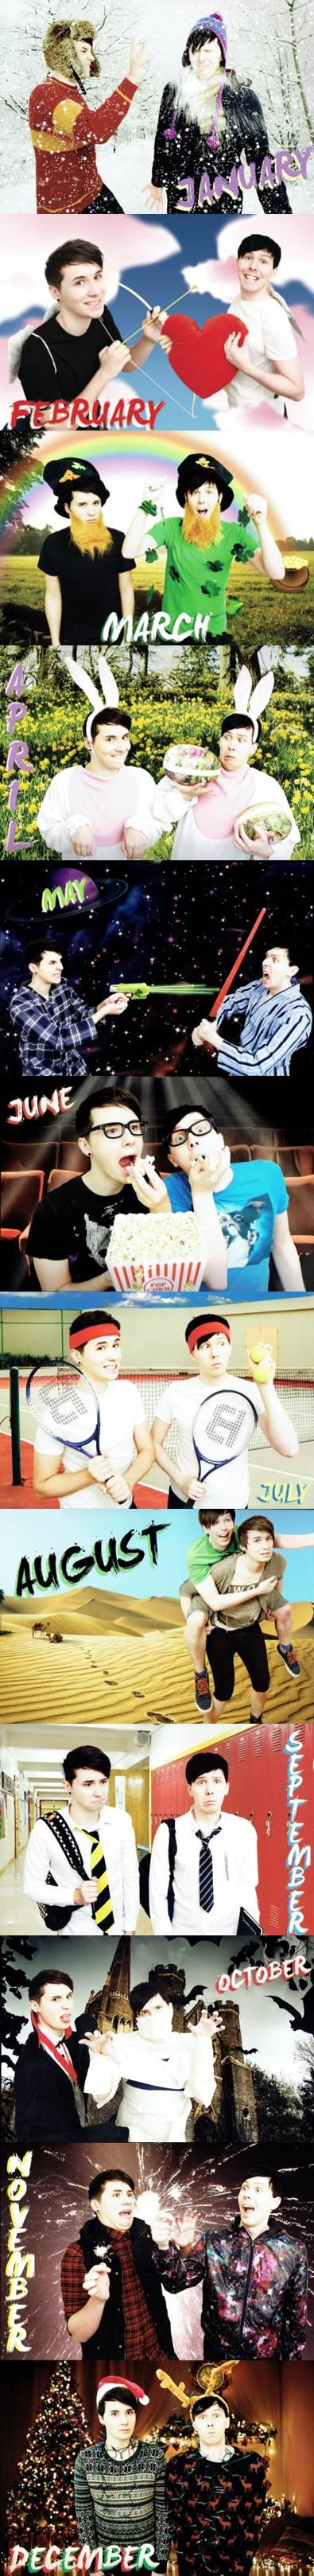 DAN AND PHIL 2015 CALENDAR ALL MONTHS I NEED THIS>>> They sell this but you have to buy it with pounds